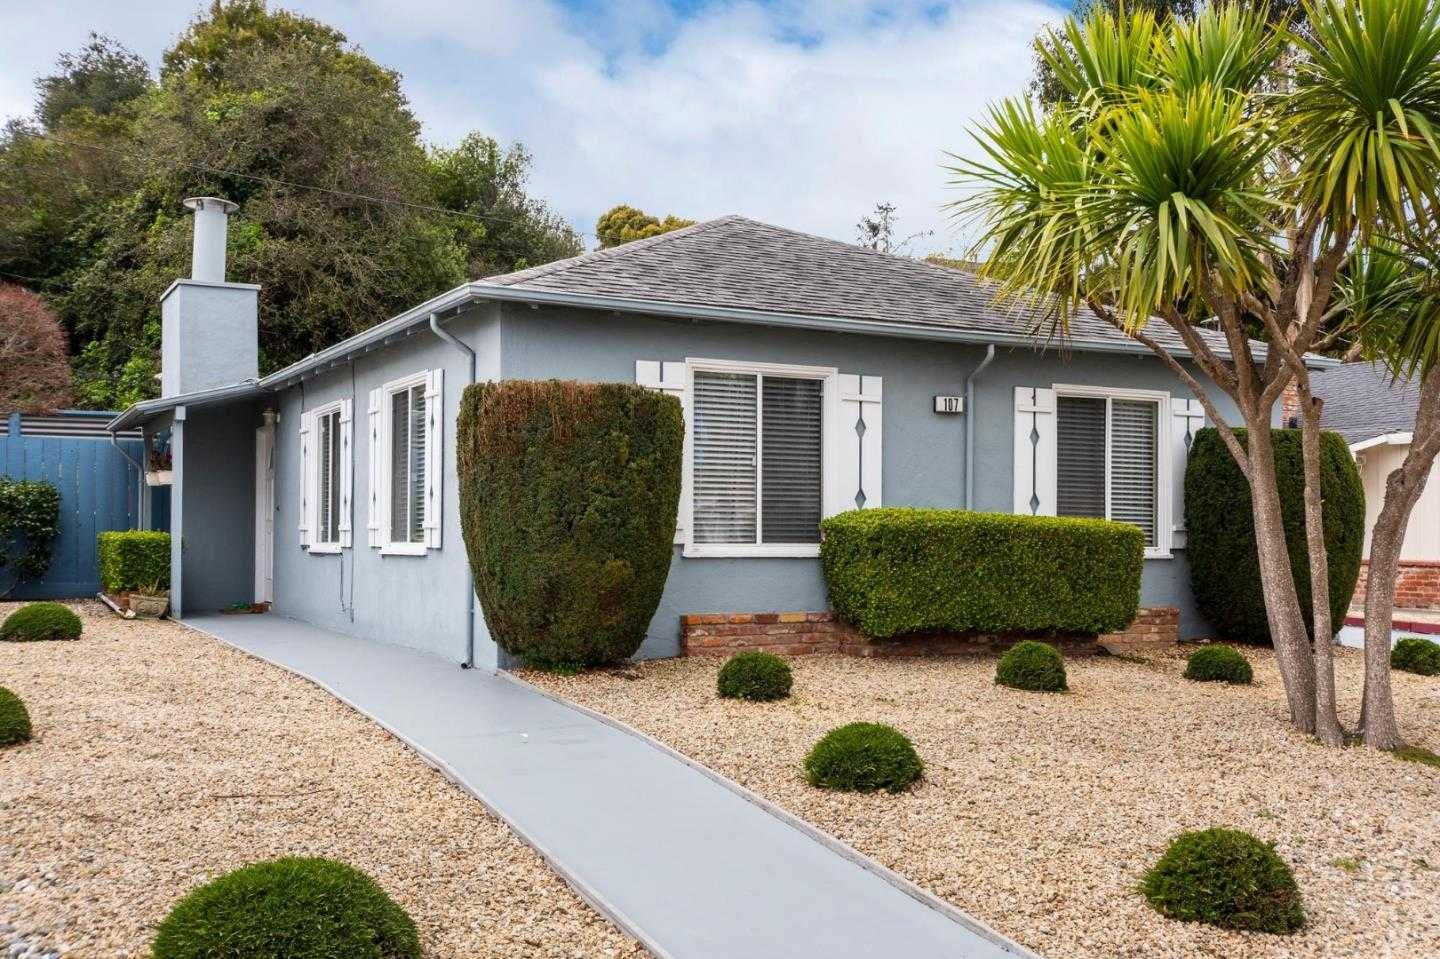 $1,049,000 - 3Br/1Ba -  for Sale in South San Francisco